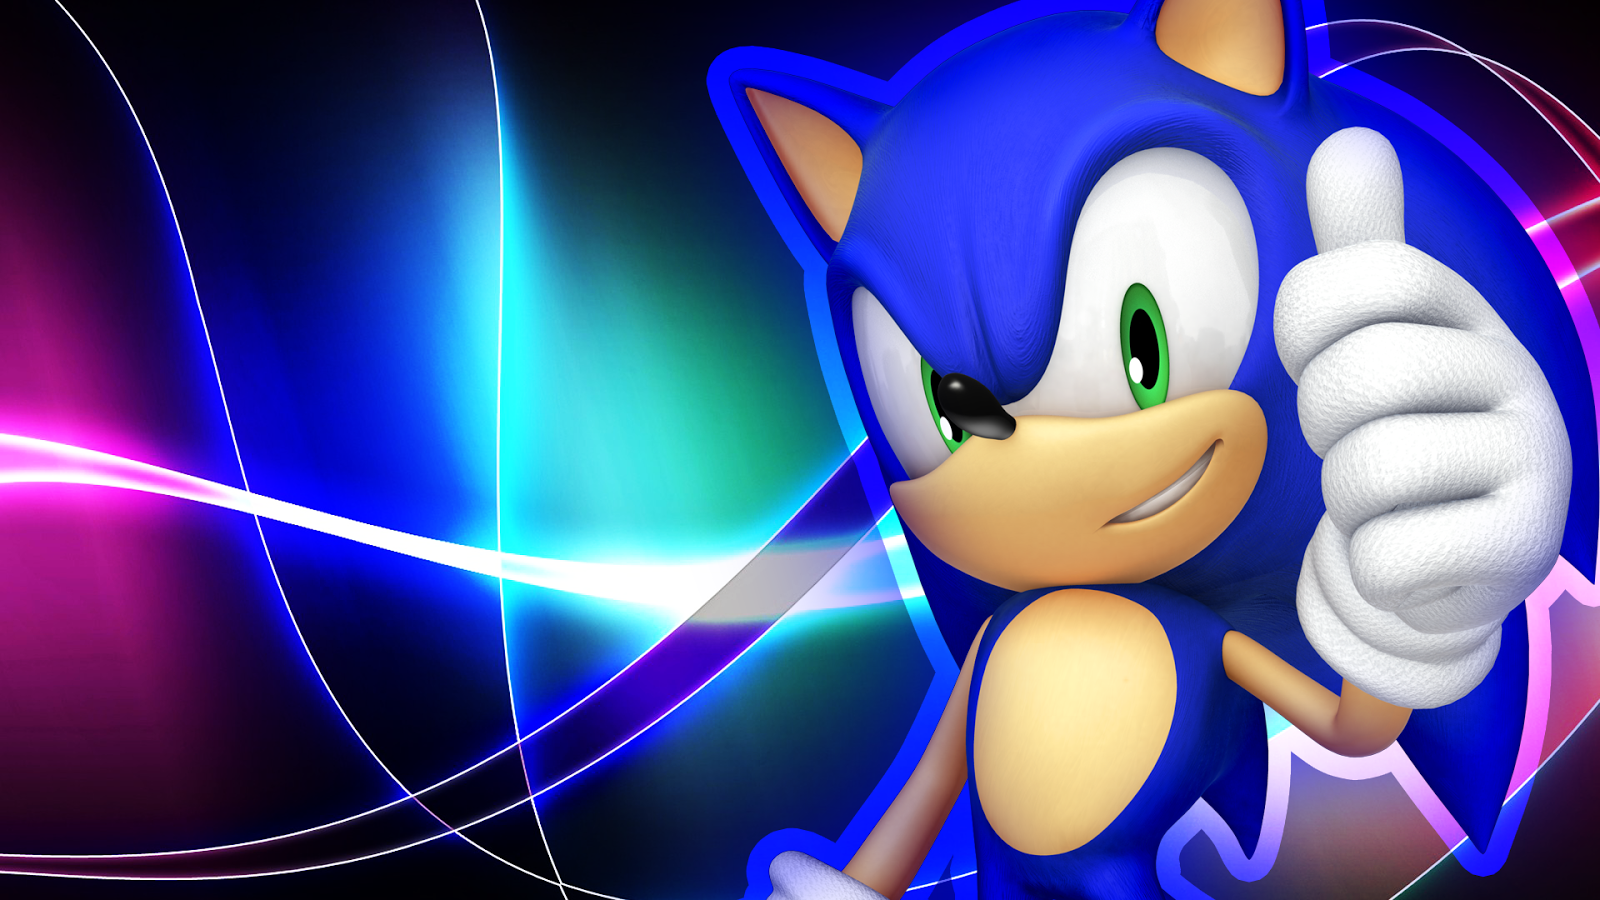 78 Sonic The Hedgehog Backgrounds On Wallpapersafari